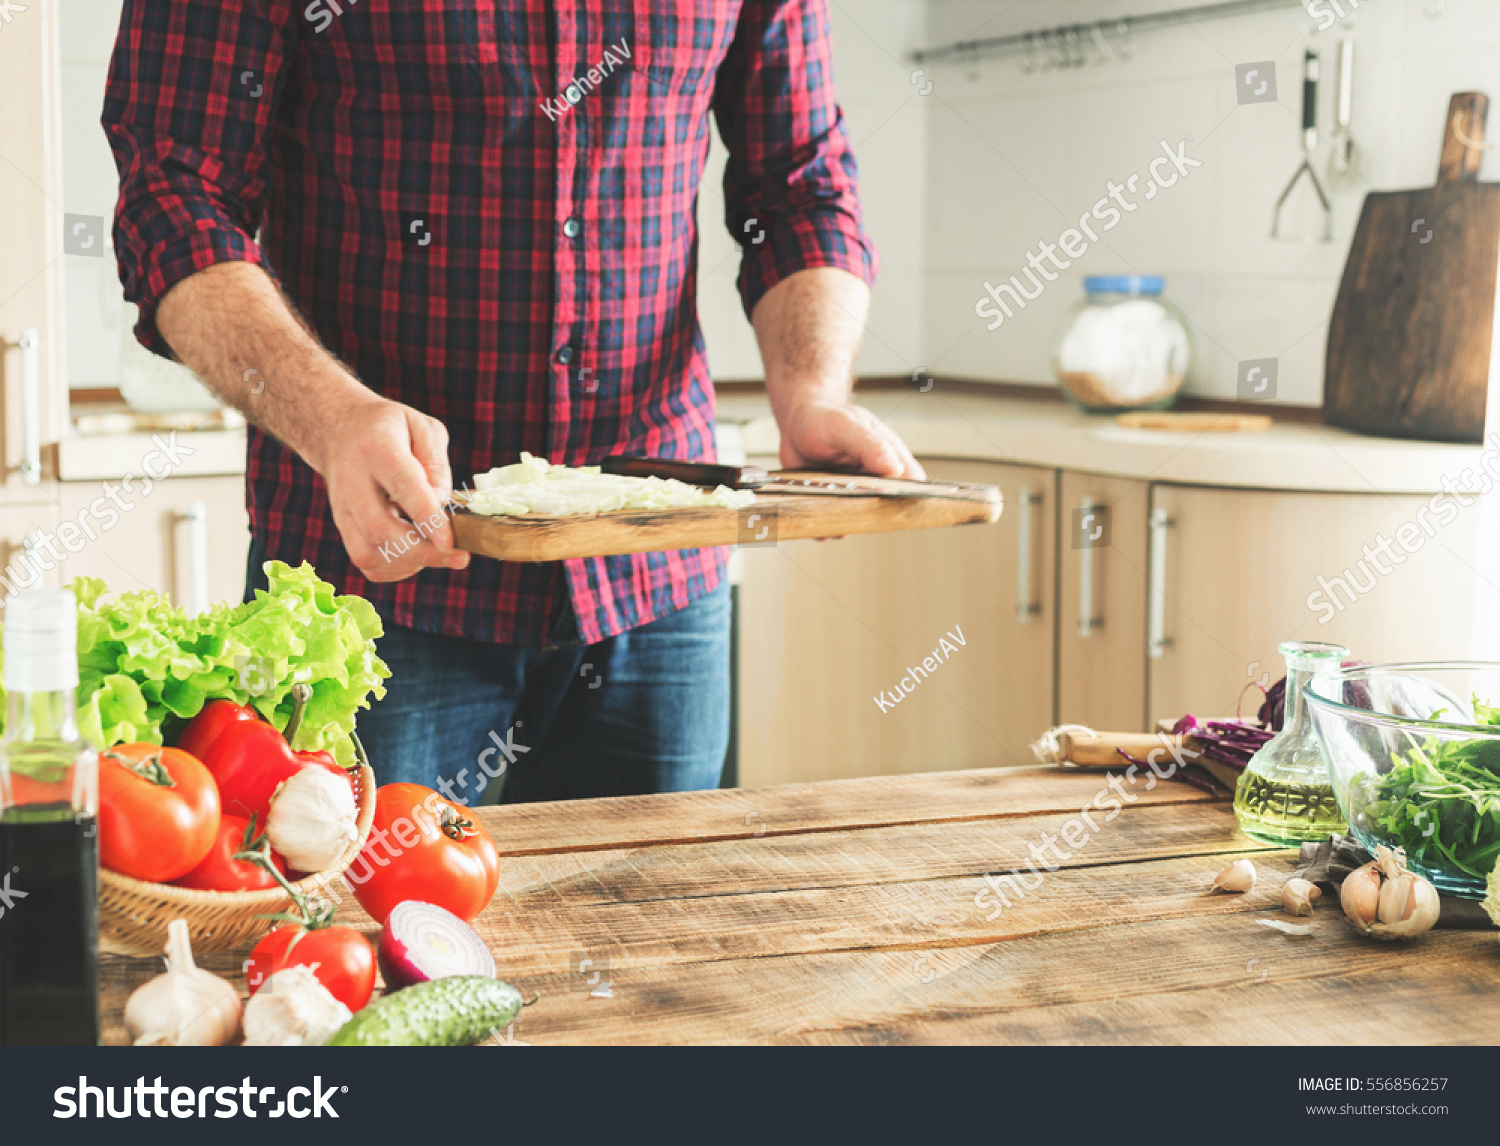 Wooden Food Table ~ Ingredients cooking healthy food on wooden stock photo